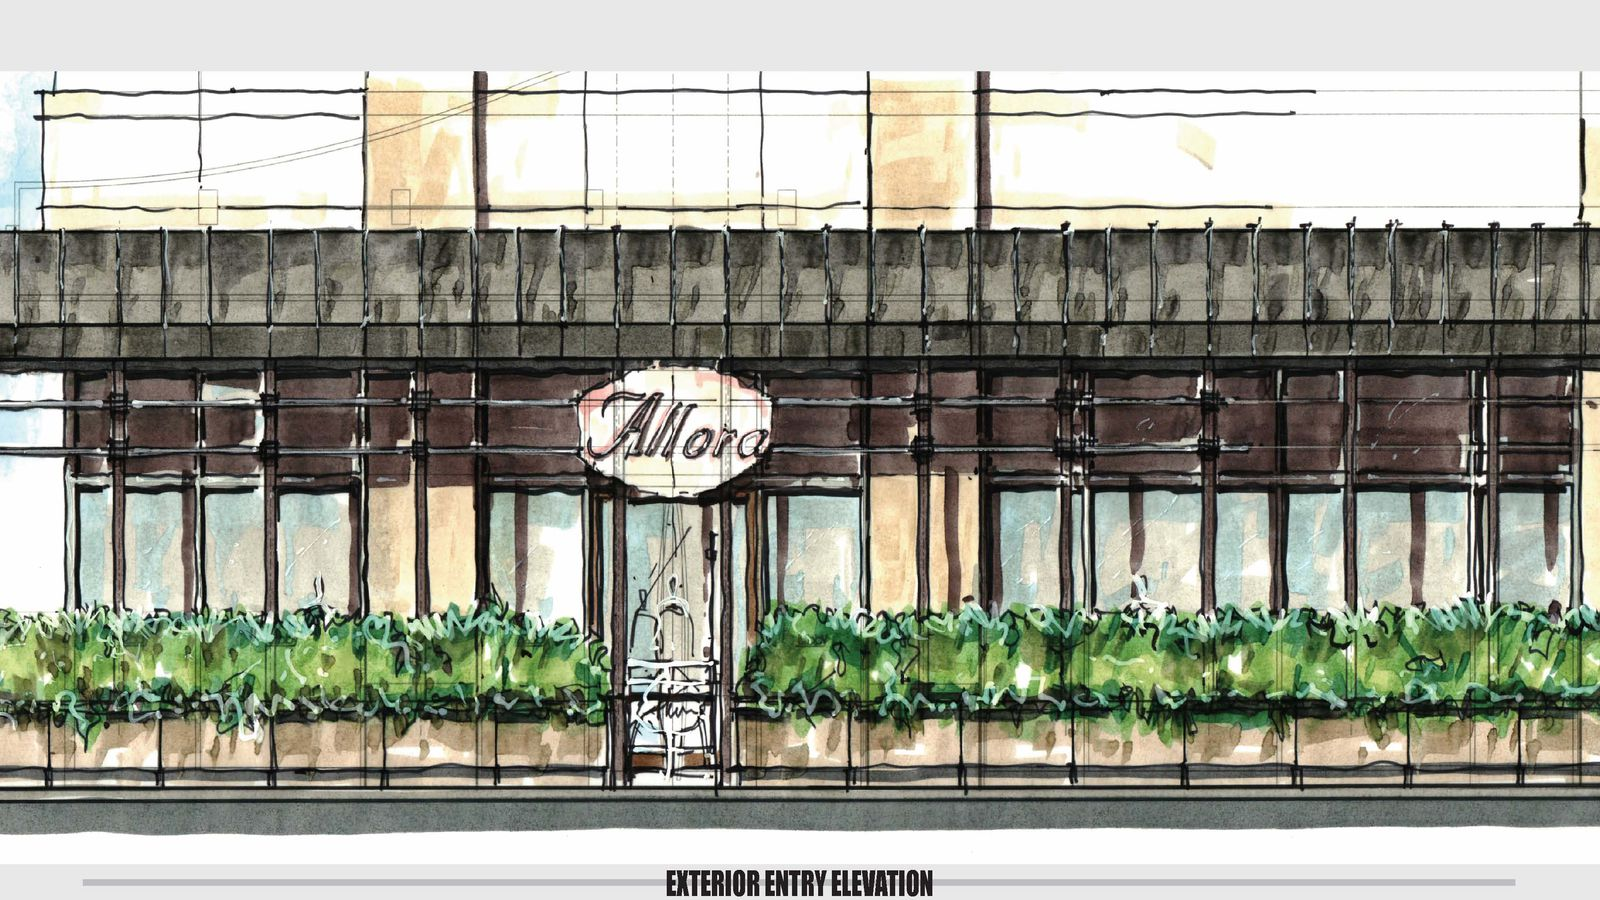 Atlanta Station Restaurants Italian Restaurant Allora Is Moving Into The Twelve Hotel